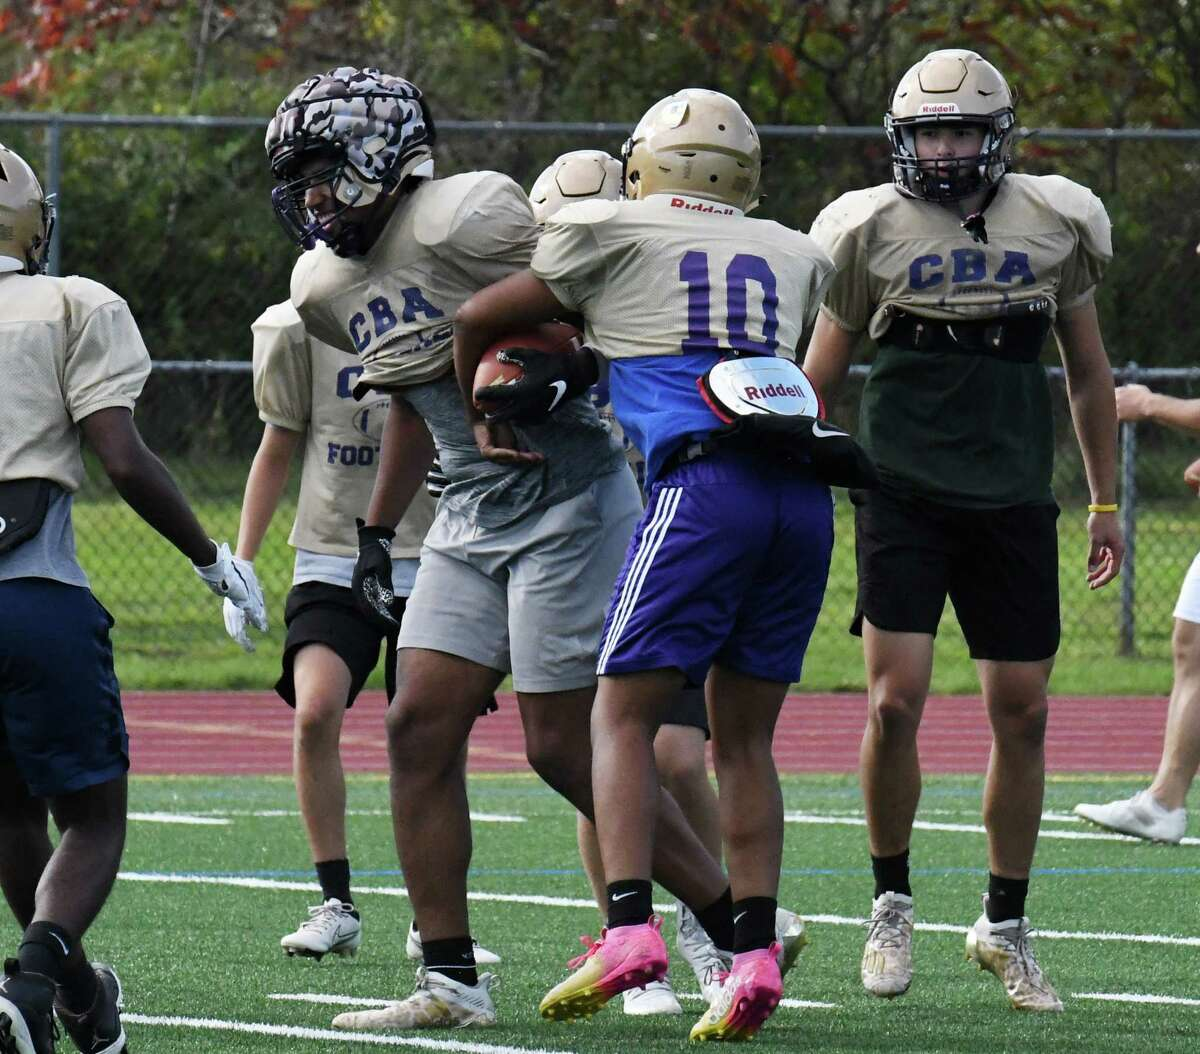 Christian Brothers Academy running back/middle linebacker Jaylen Riggins, center, tries to strip the ball from a teammate during a practice session on Wednesday, Oct. 6, 2021, at CBA in Colonie, N.Y.